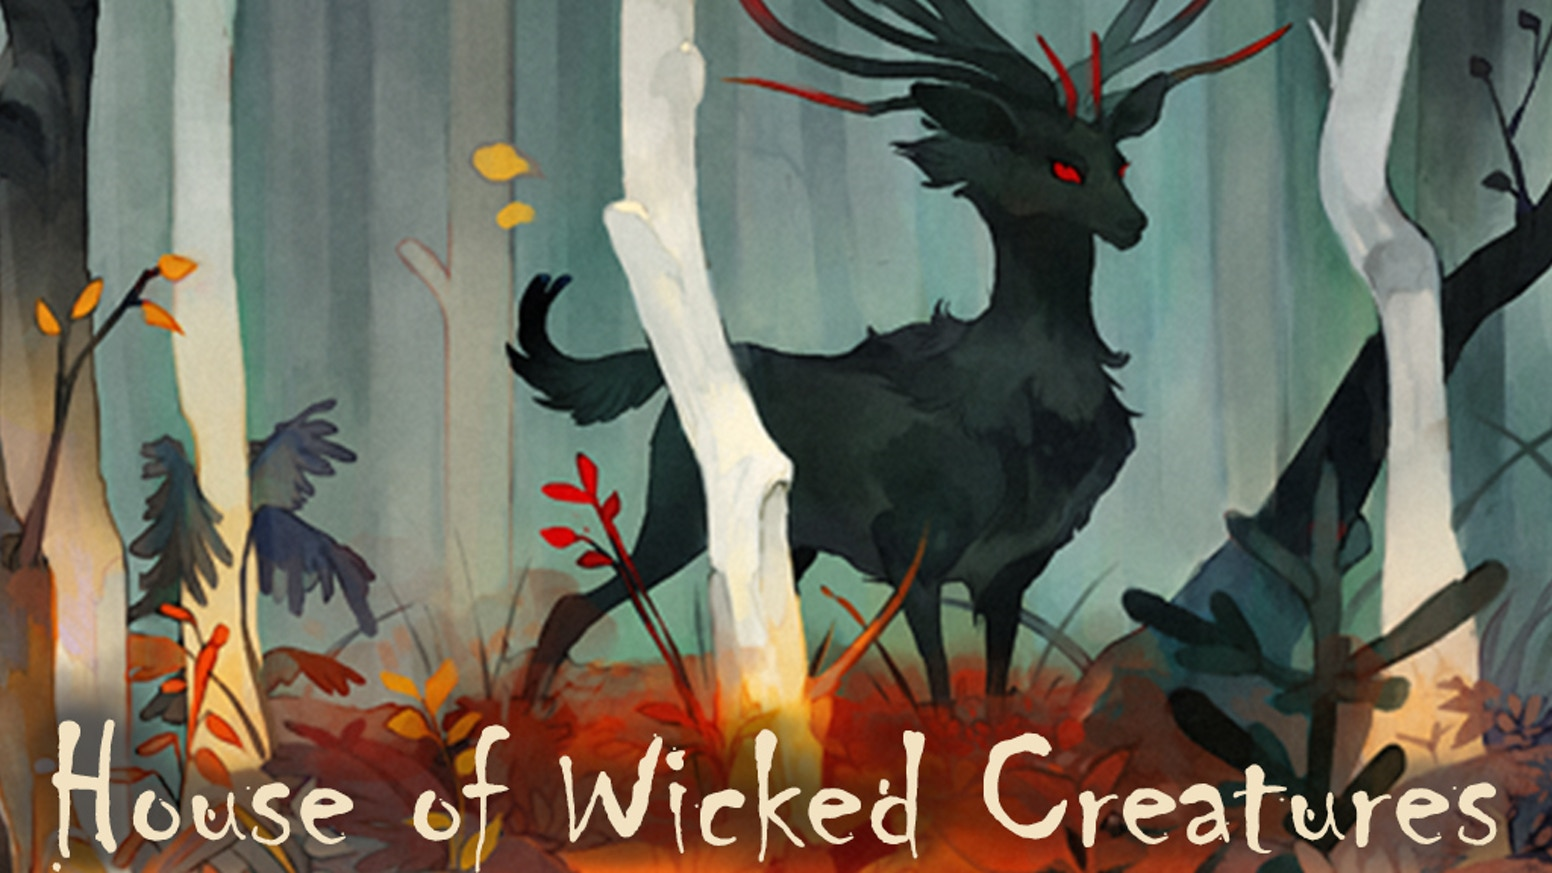 Help fund indie dark fantasy HOUSE OF WICKED CREATURES, a nightmarish comic about forest animals and ghosts by Vera Greentea and ELK.